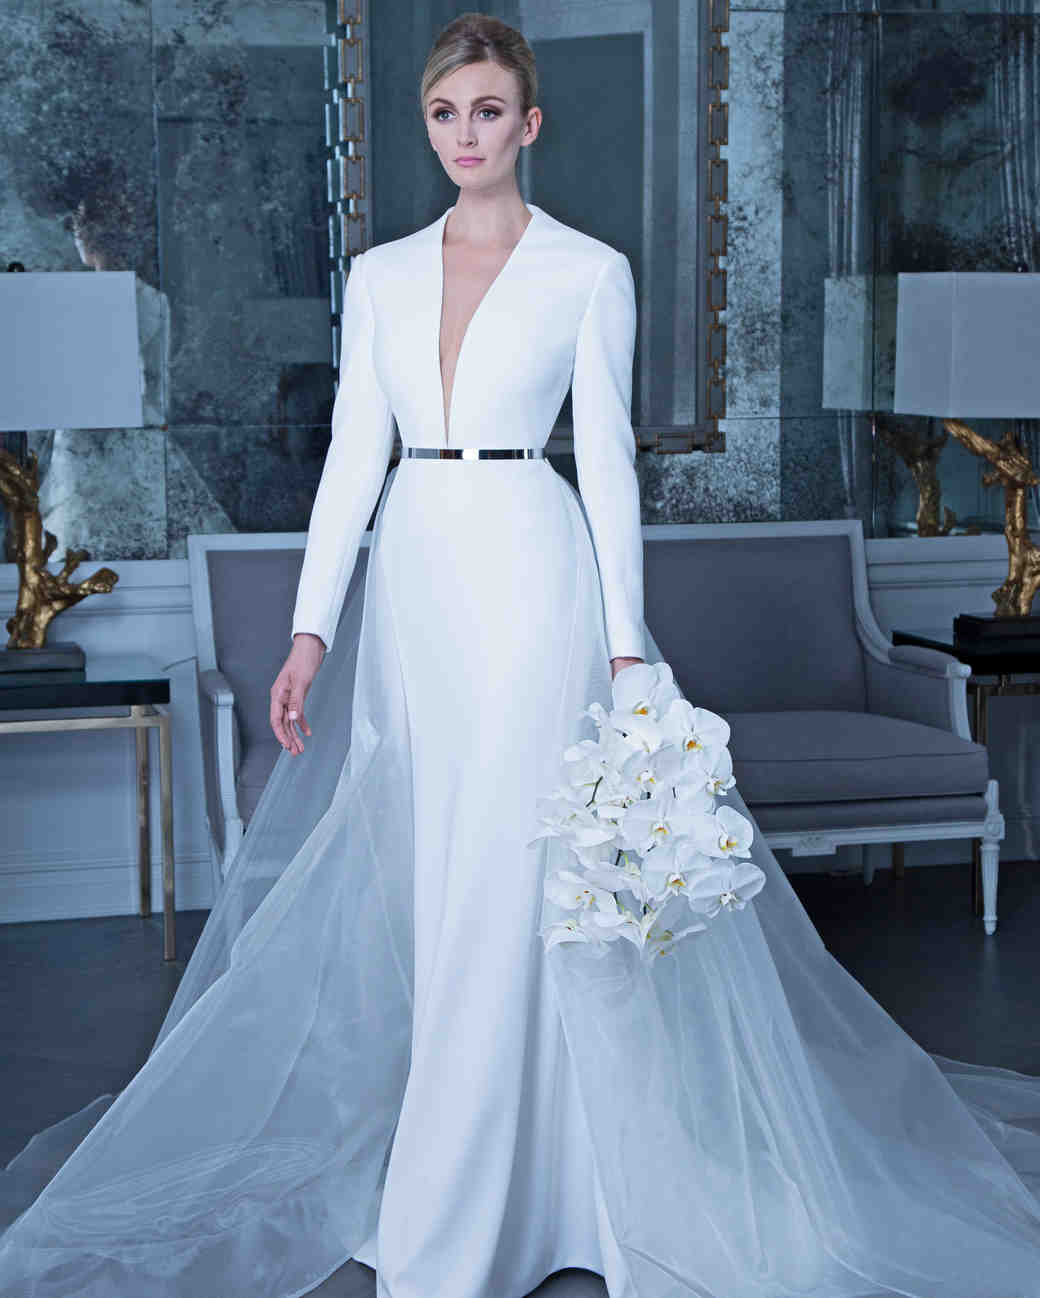 Wedding Desses: Long-Sleeved Wedding Dresses We Love